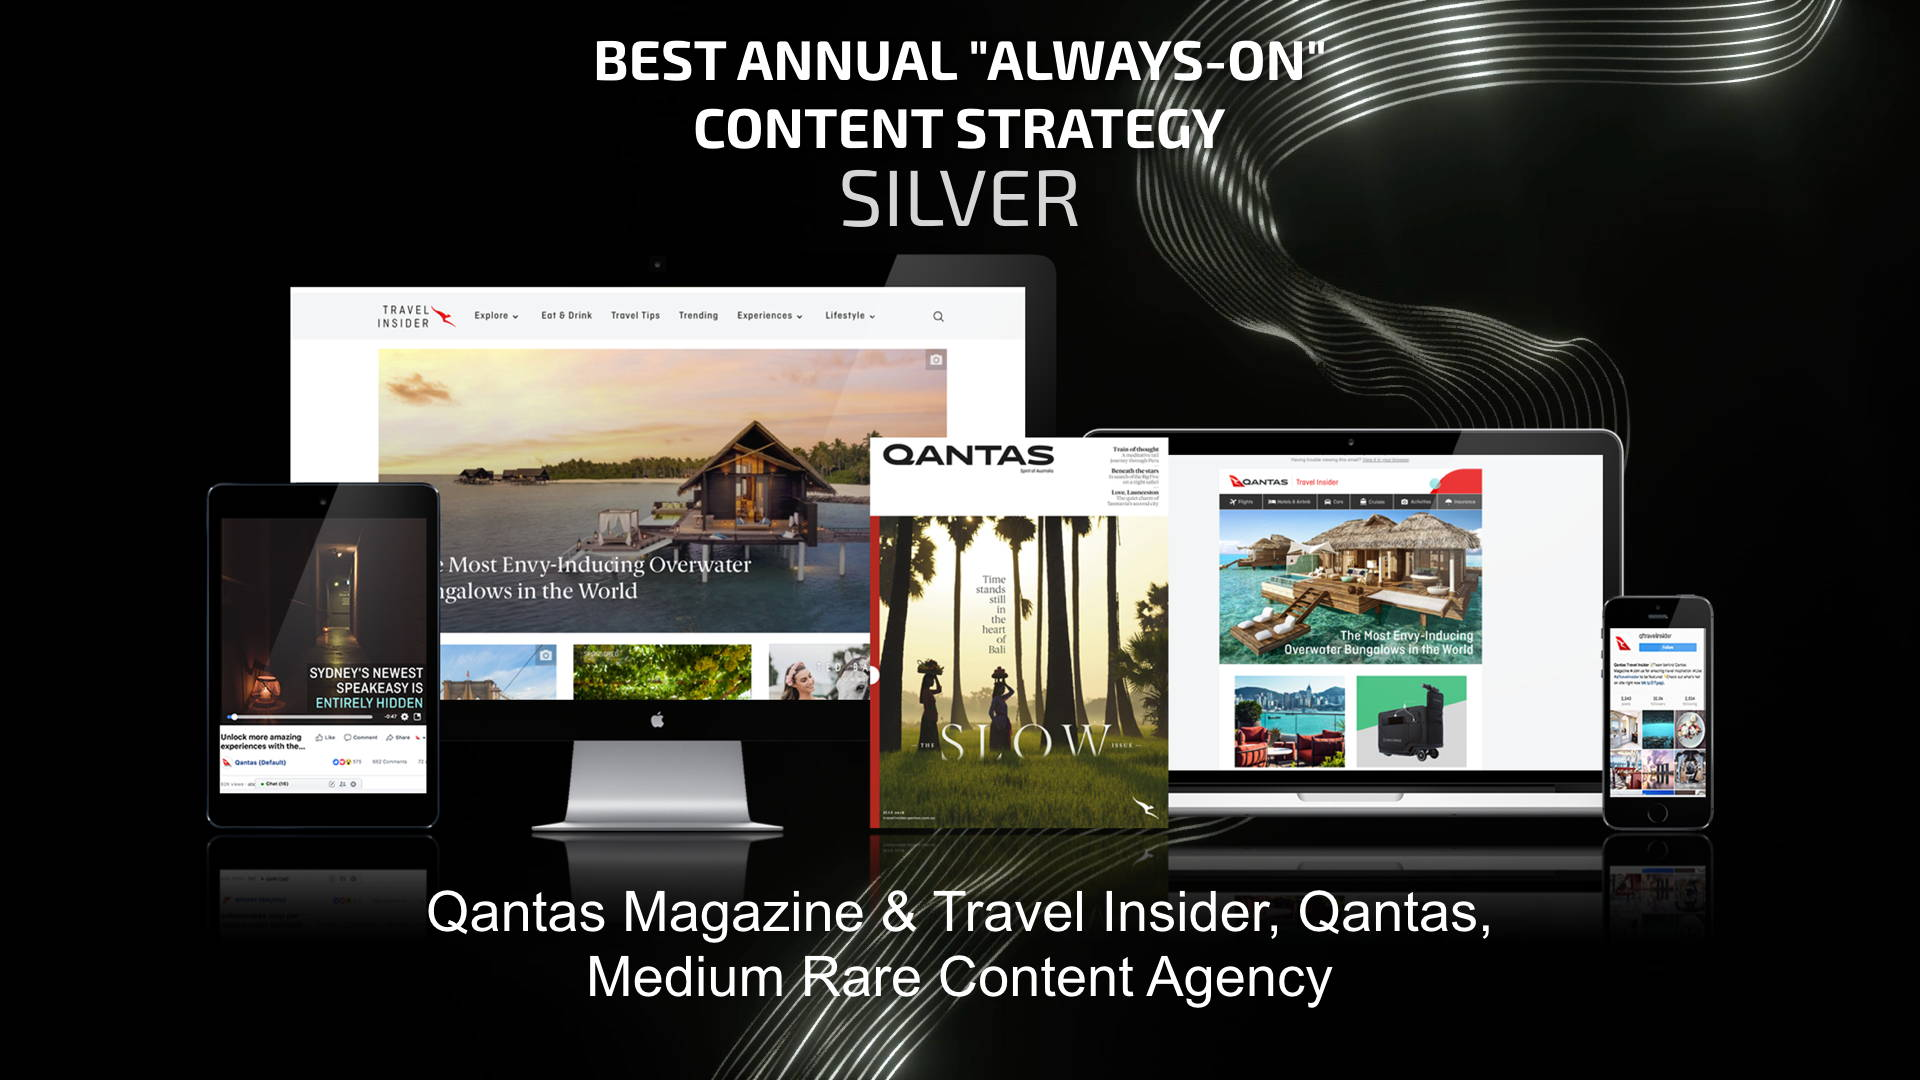 'Always On' Silver Winner